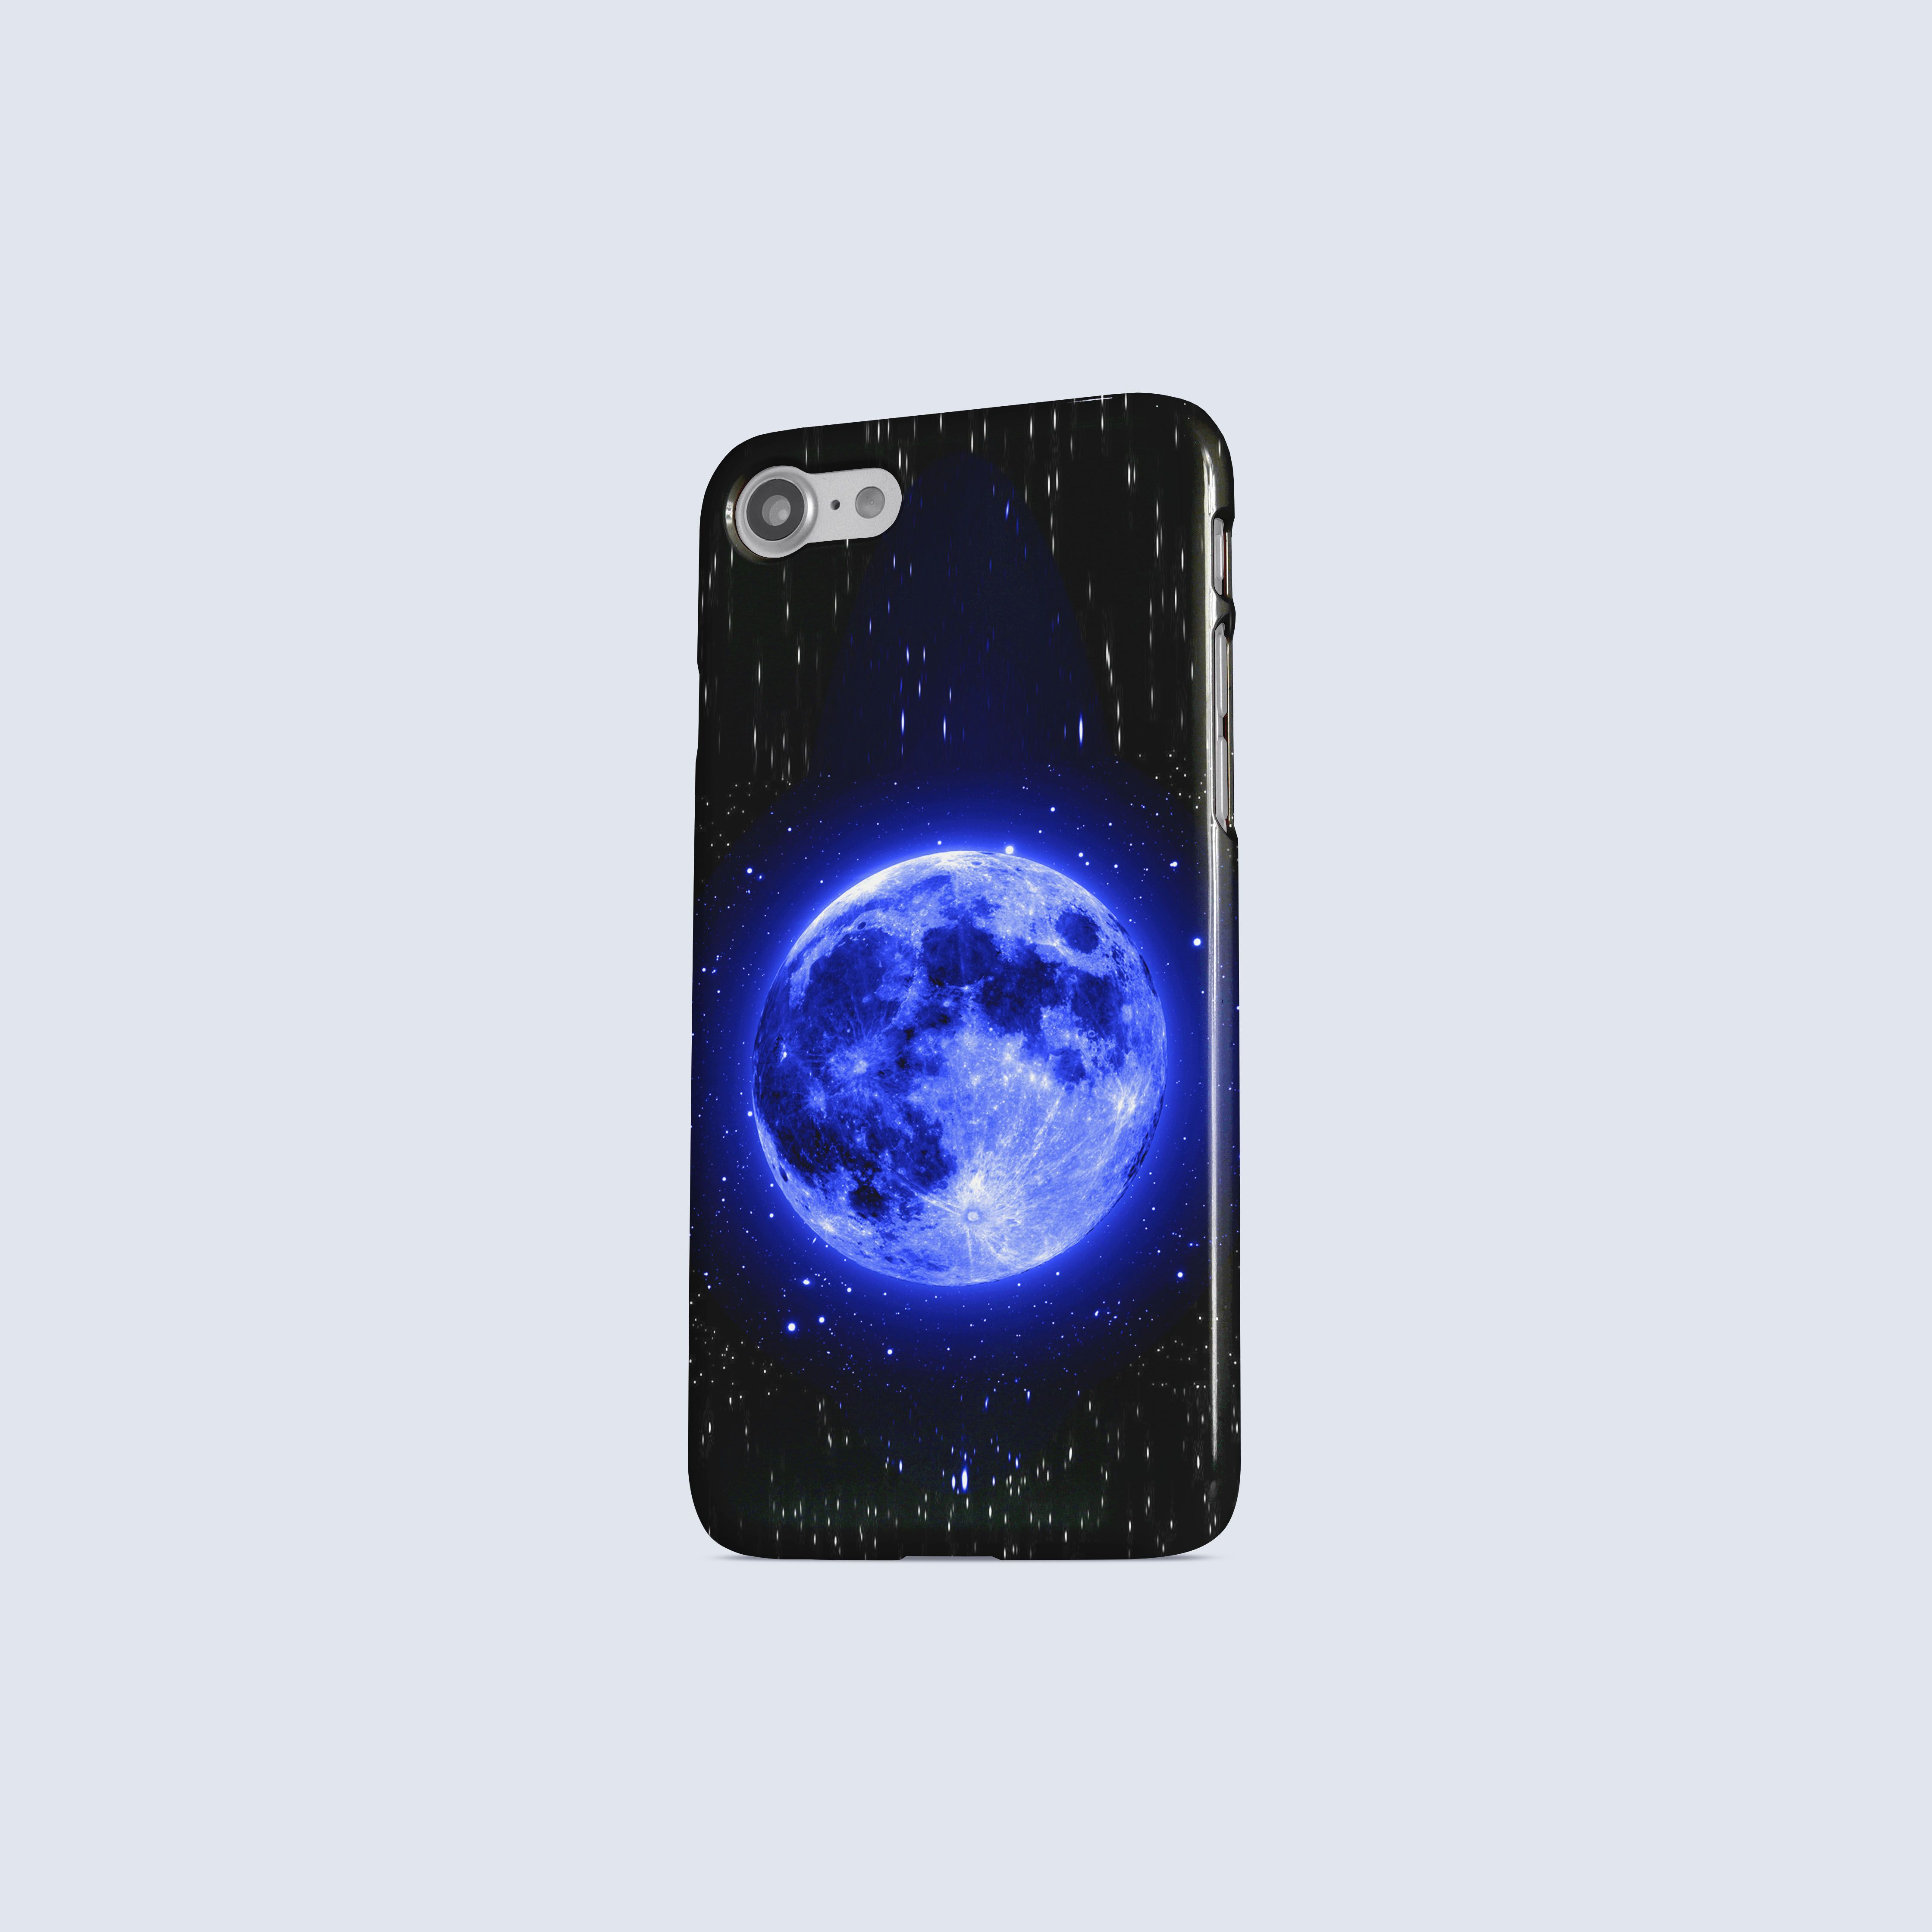 The Moon Case Art Minimalism Case Iphone 5 Case Iphone 6 Case Iphone 7 Case Iphone